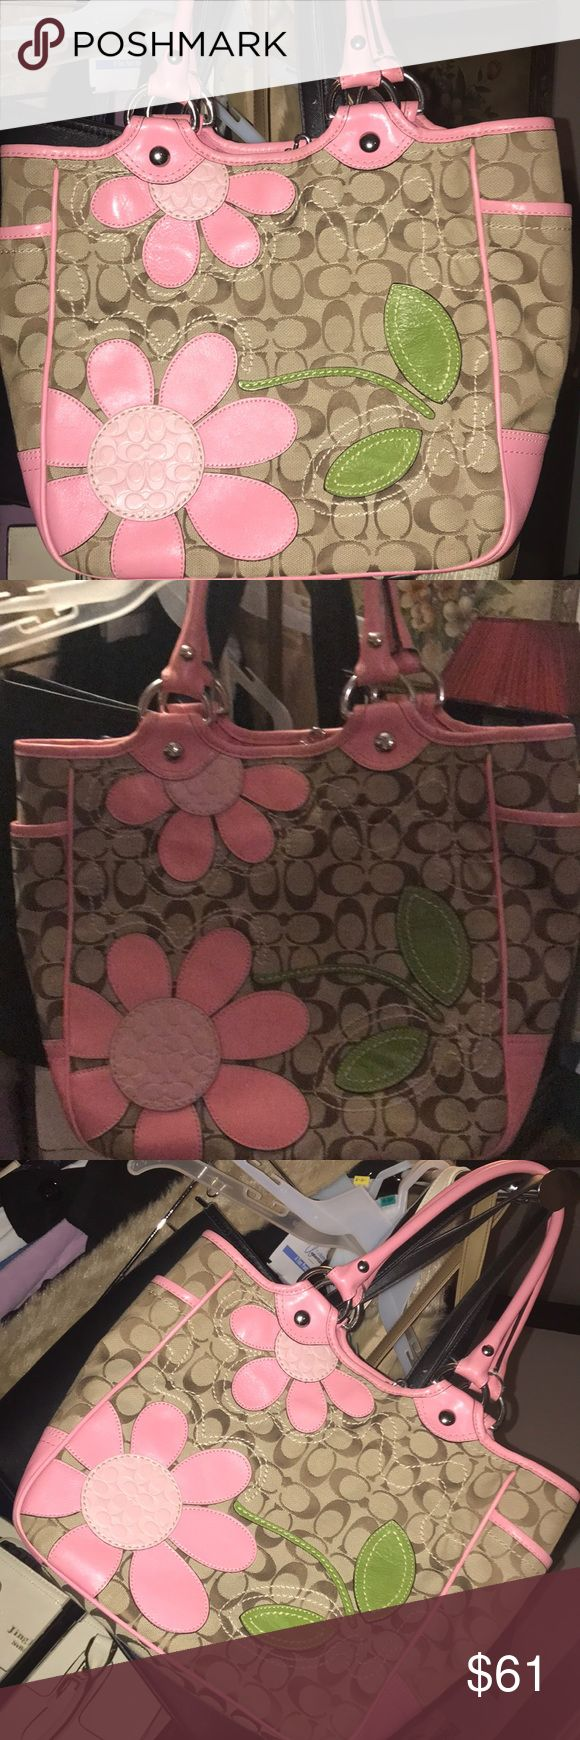 Authentic and original Coach Tote Versatile and different but oh so cute Pink and flower 🌸 pattern Coach Tote Bag. Great condition in and out of the bag. Coach Bags Totes